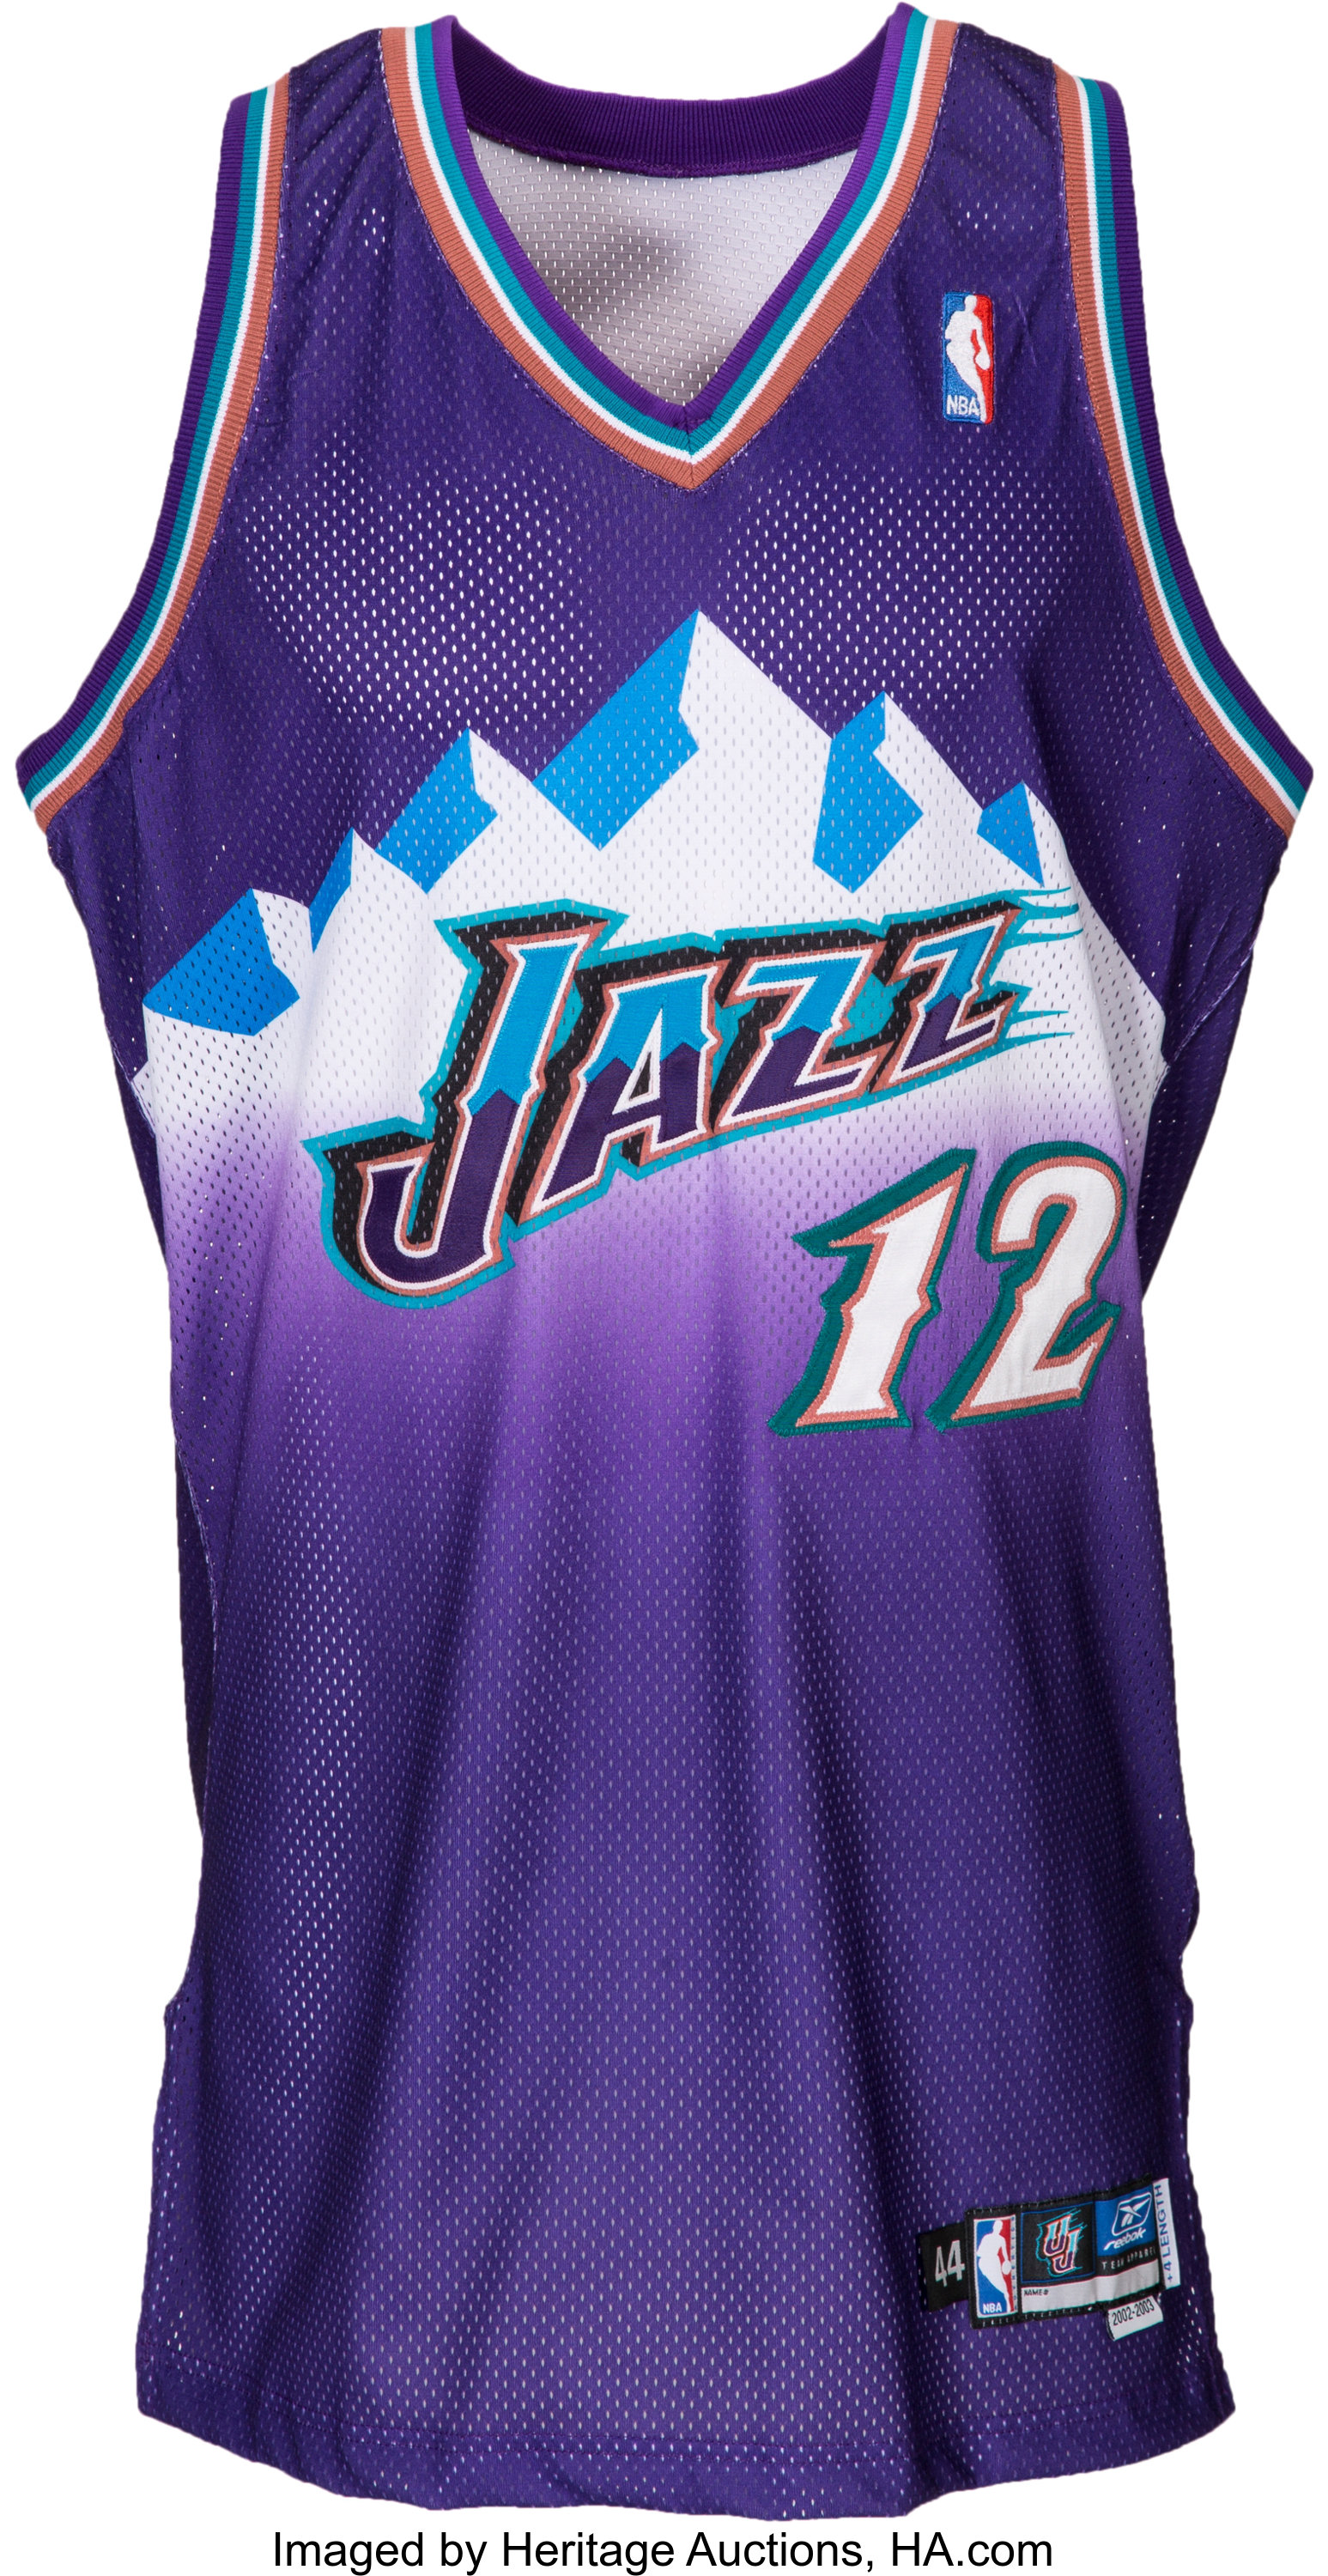 reputable site 427f2 34b0e 2002-03 John Stockton Game Worn Utah Jazz Jersey Sourced ...